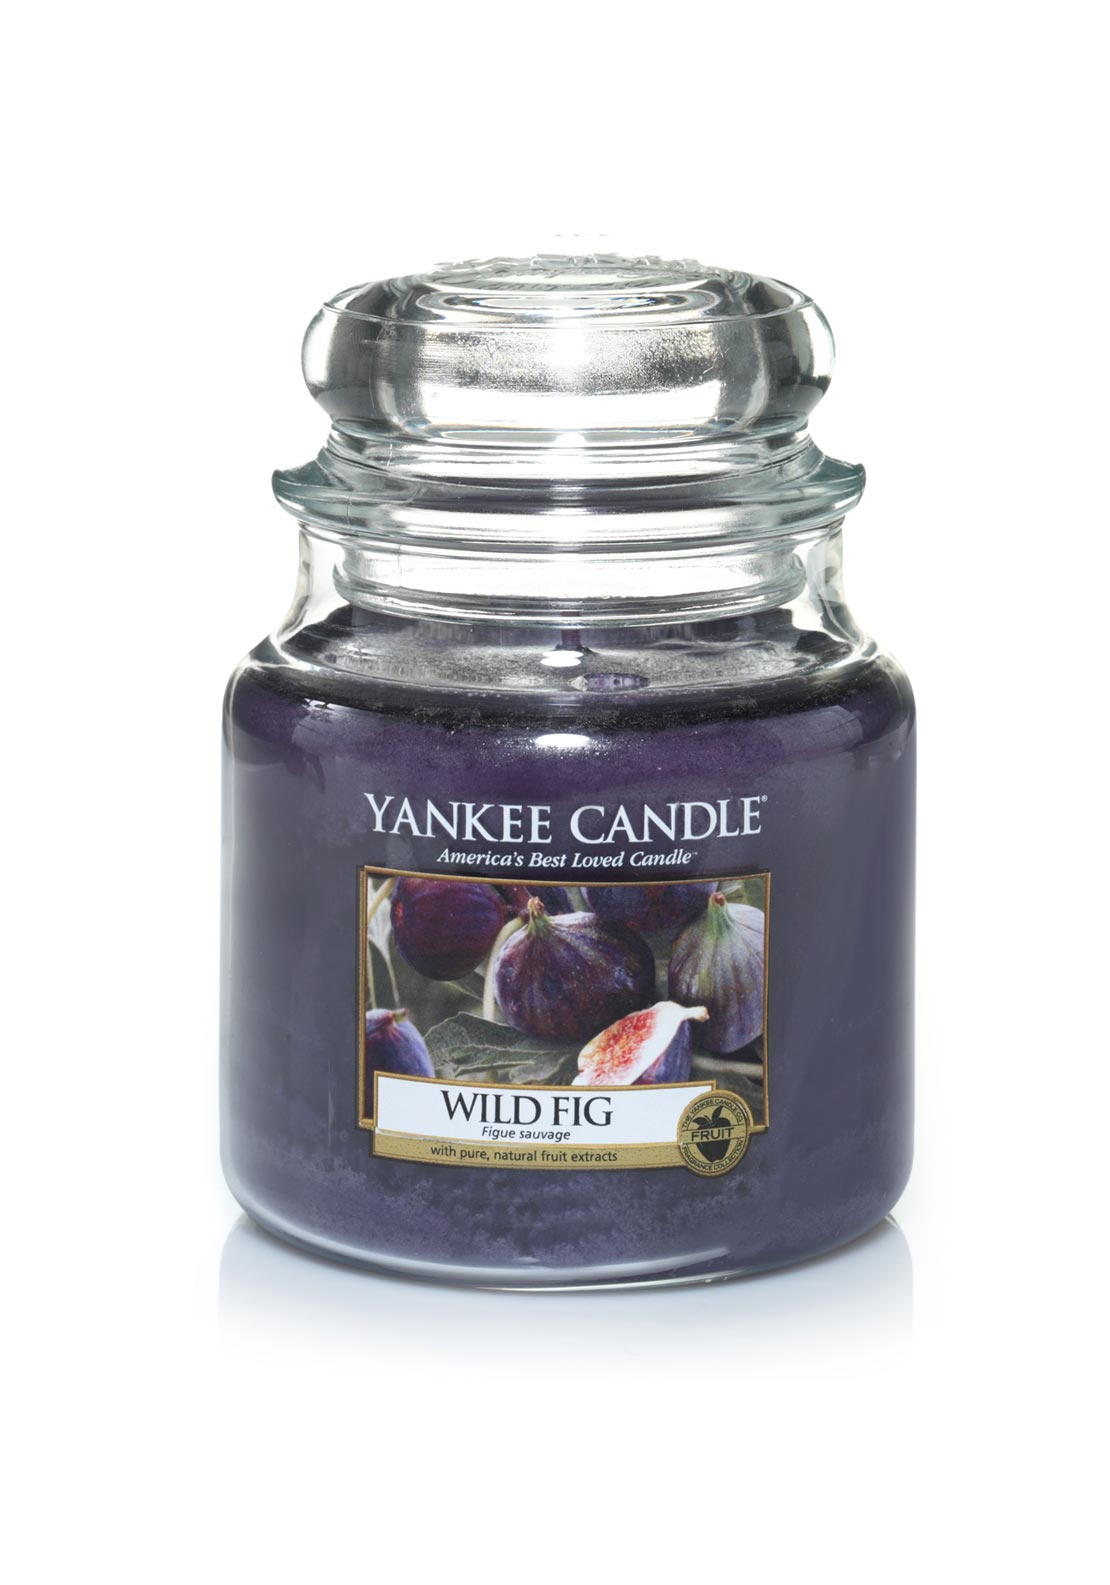 Yankee Candle Medium Classic Jar, Wild Fig